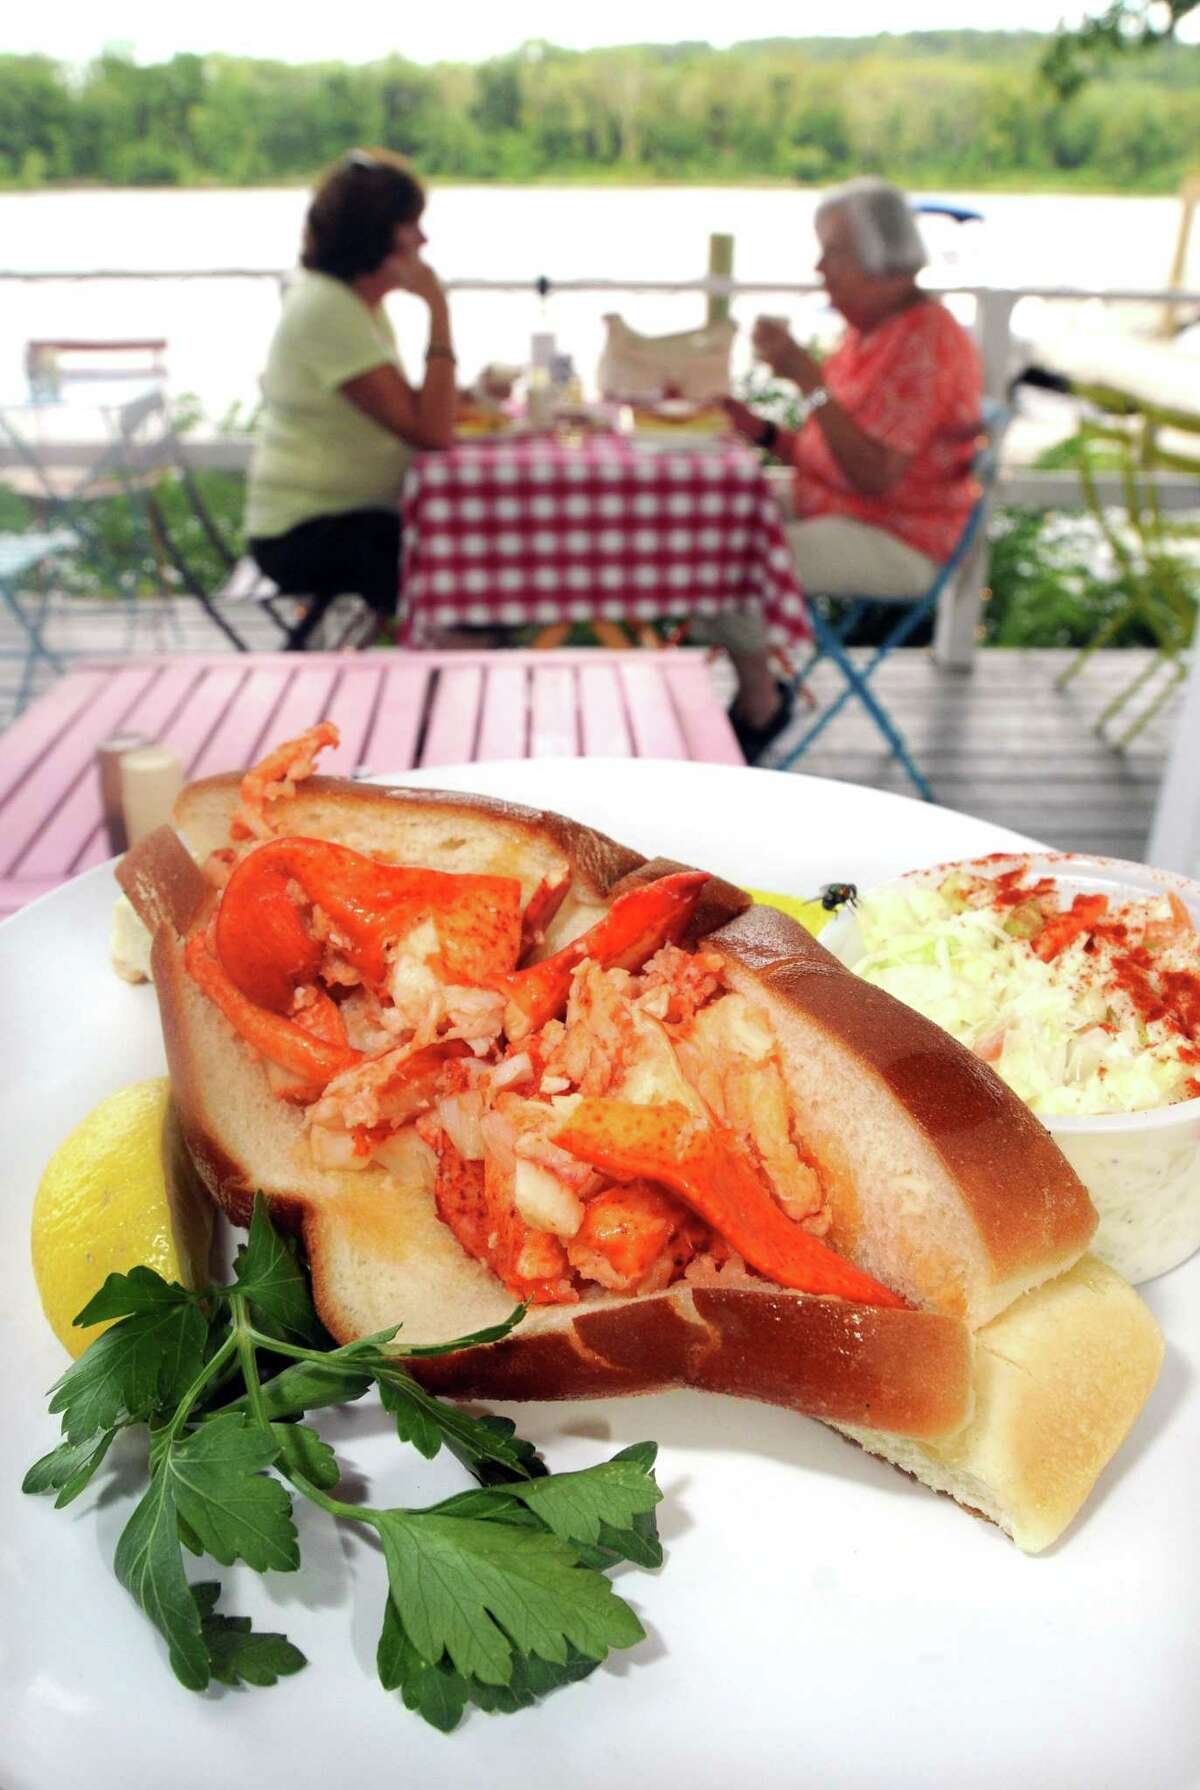 Savor Lobster is on Sept. 22 from 3-6 p.m. at the Maritime Aquarium at Norwalk, 10 N. Water Street, Norwalk. Tickets are $40. For more information, visit savorlobster.com.